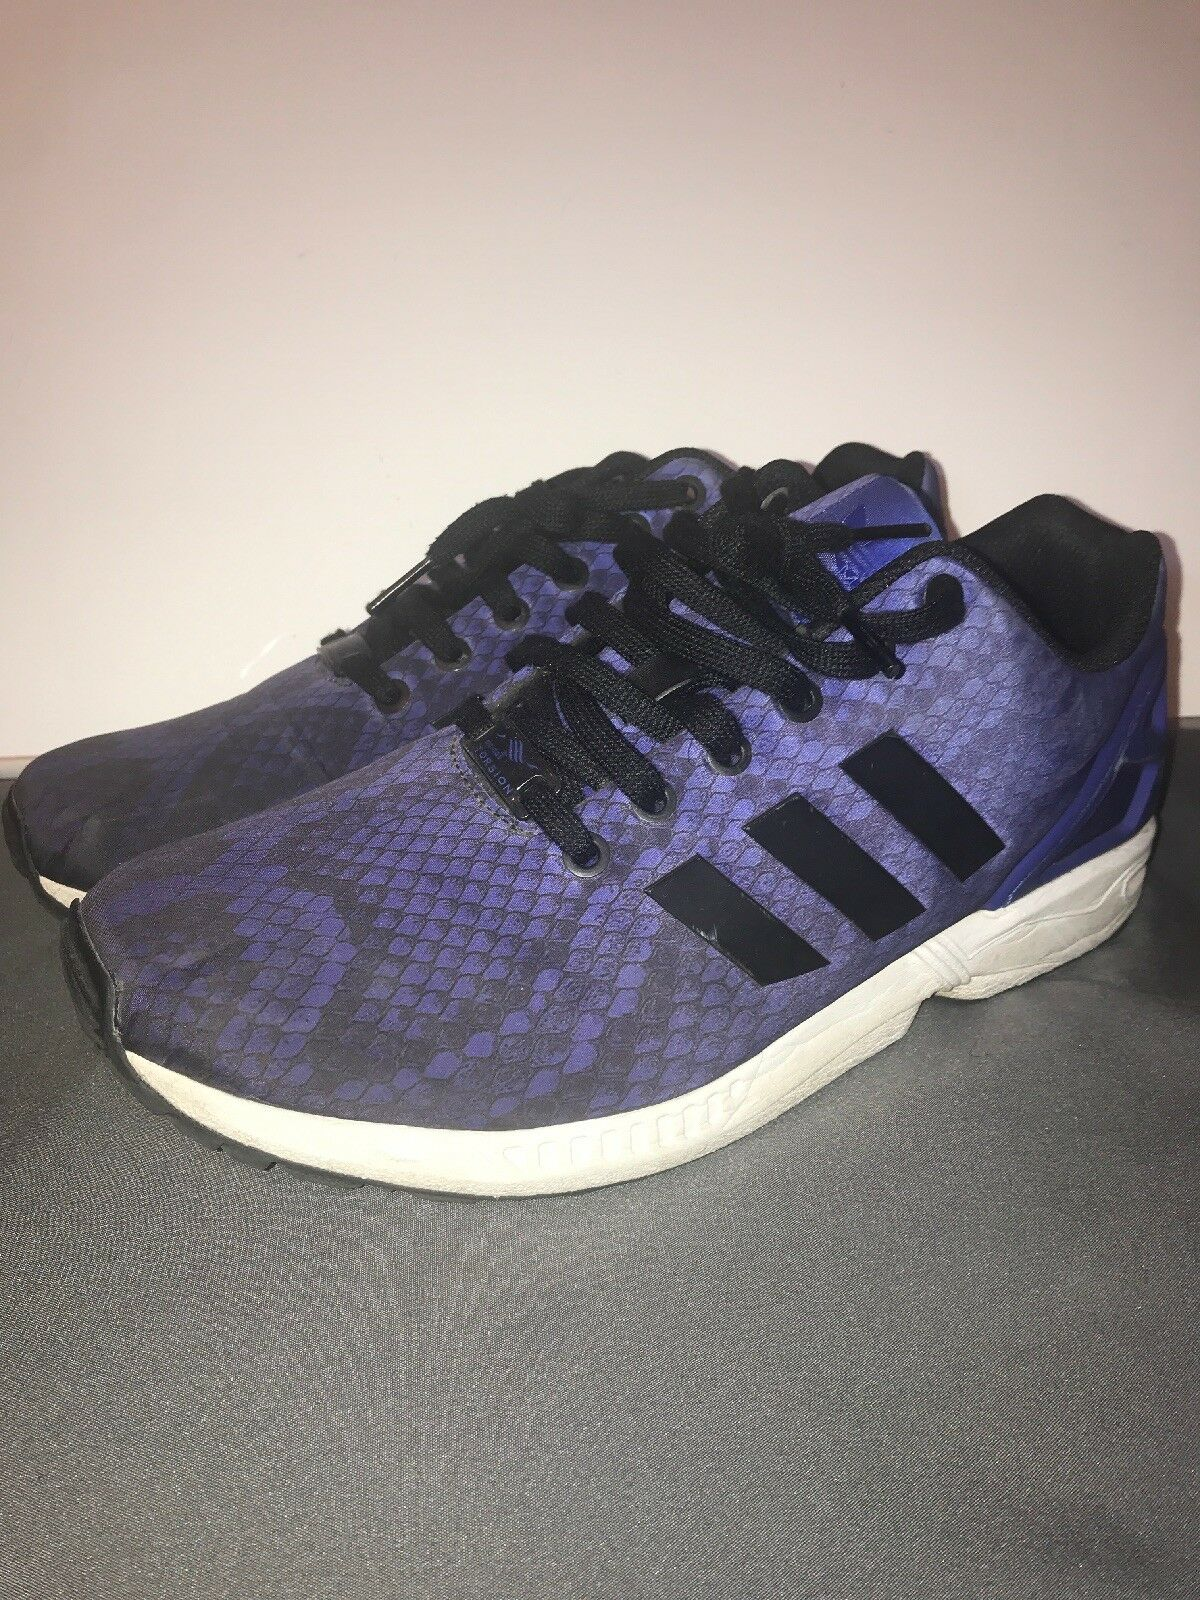 USED ADIDAS ORIGINALS XENO ZX FLUX BLUE SIZE 9.5 New shoes for men and women, limited time discount